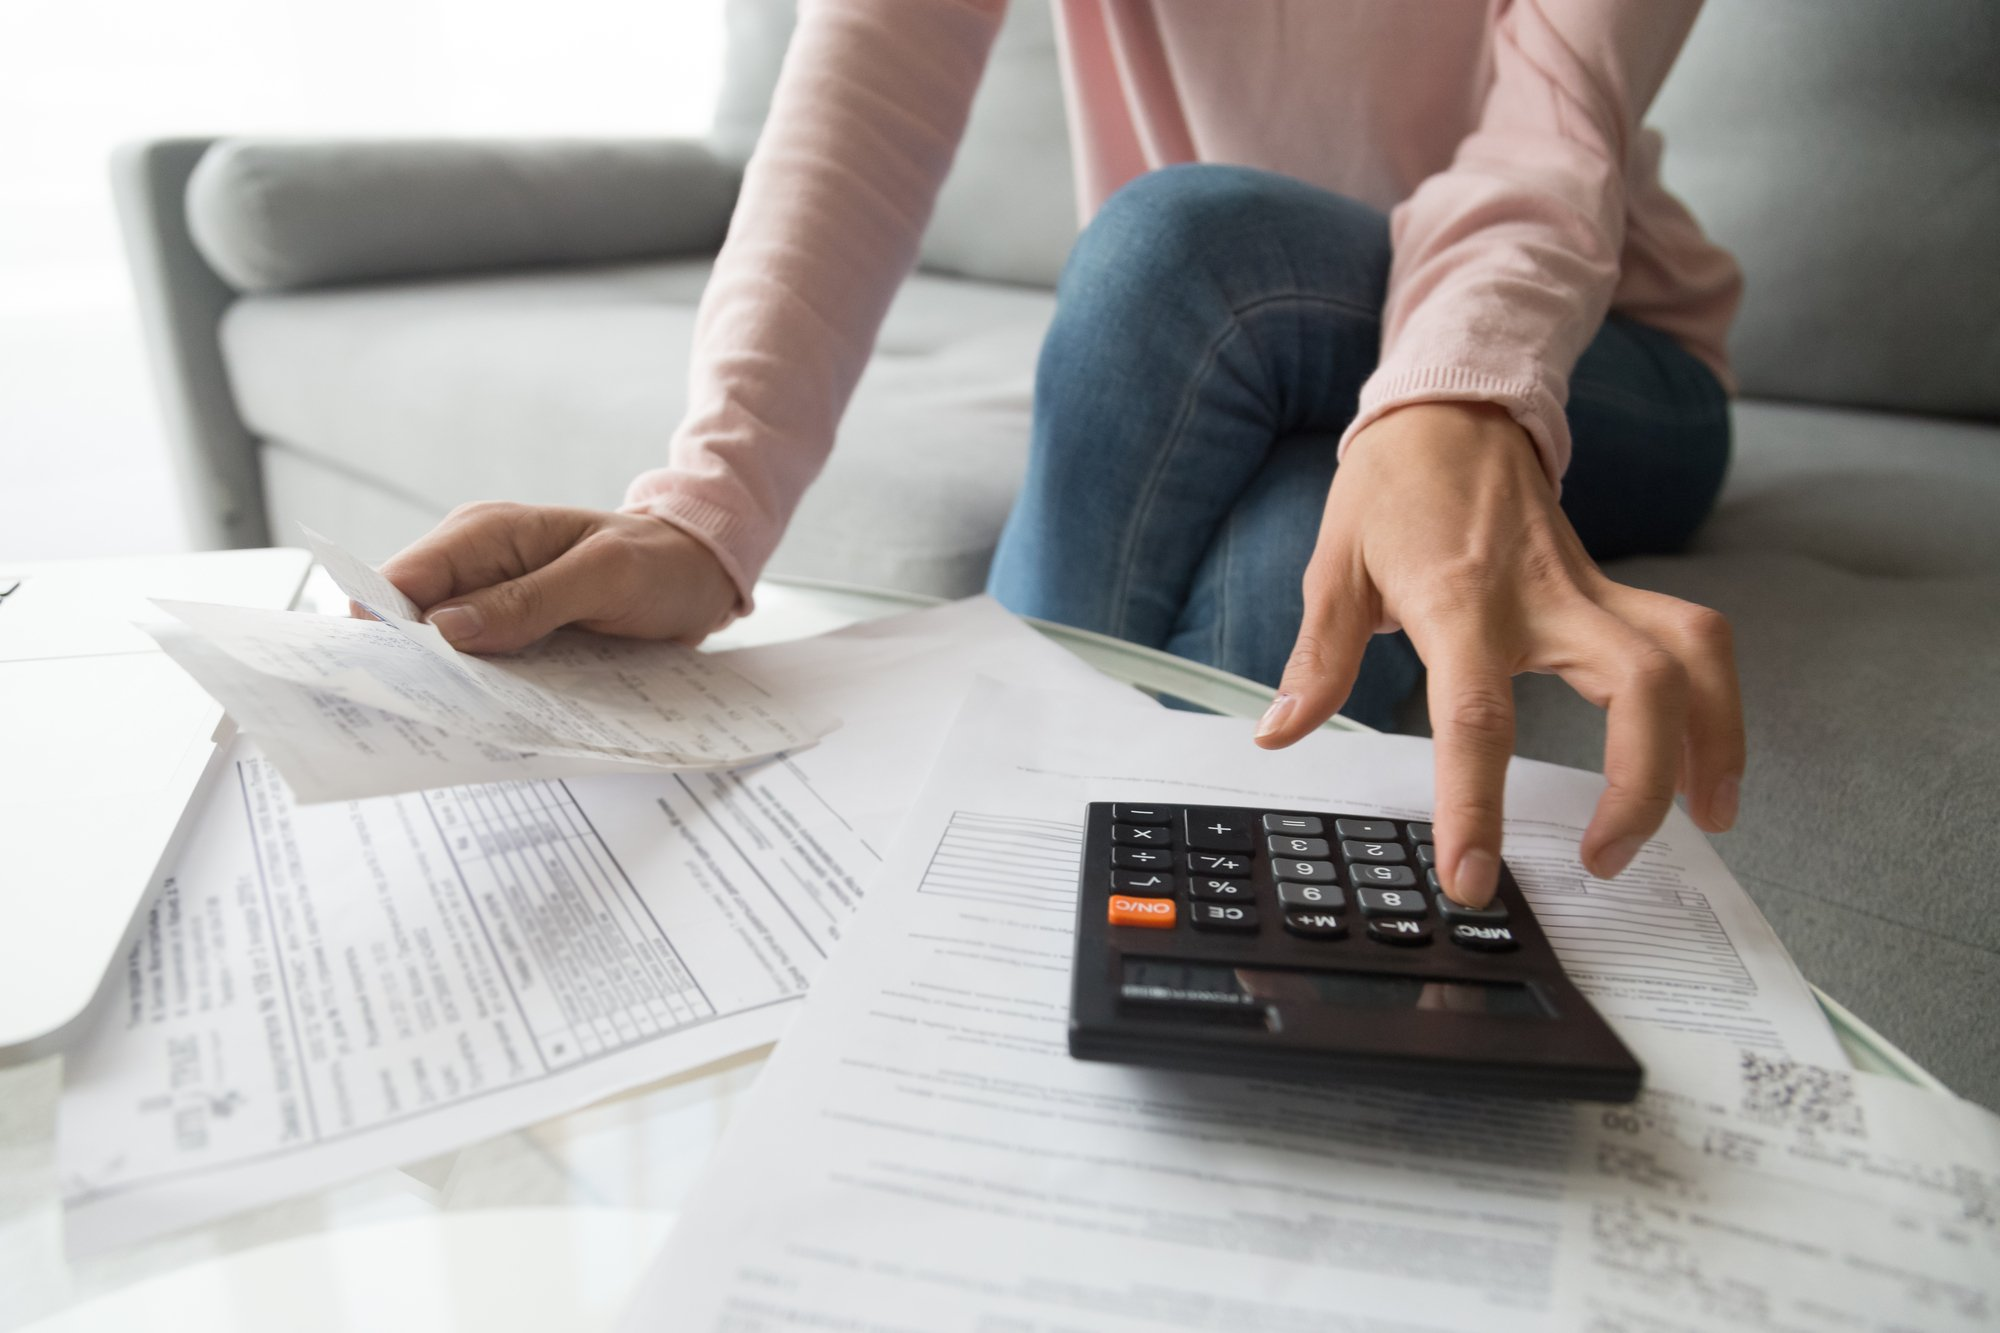 Woman holding bills using calculator manage finances, close up view